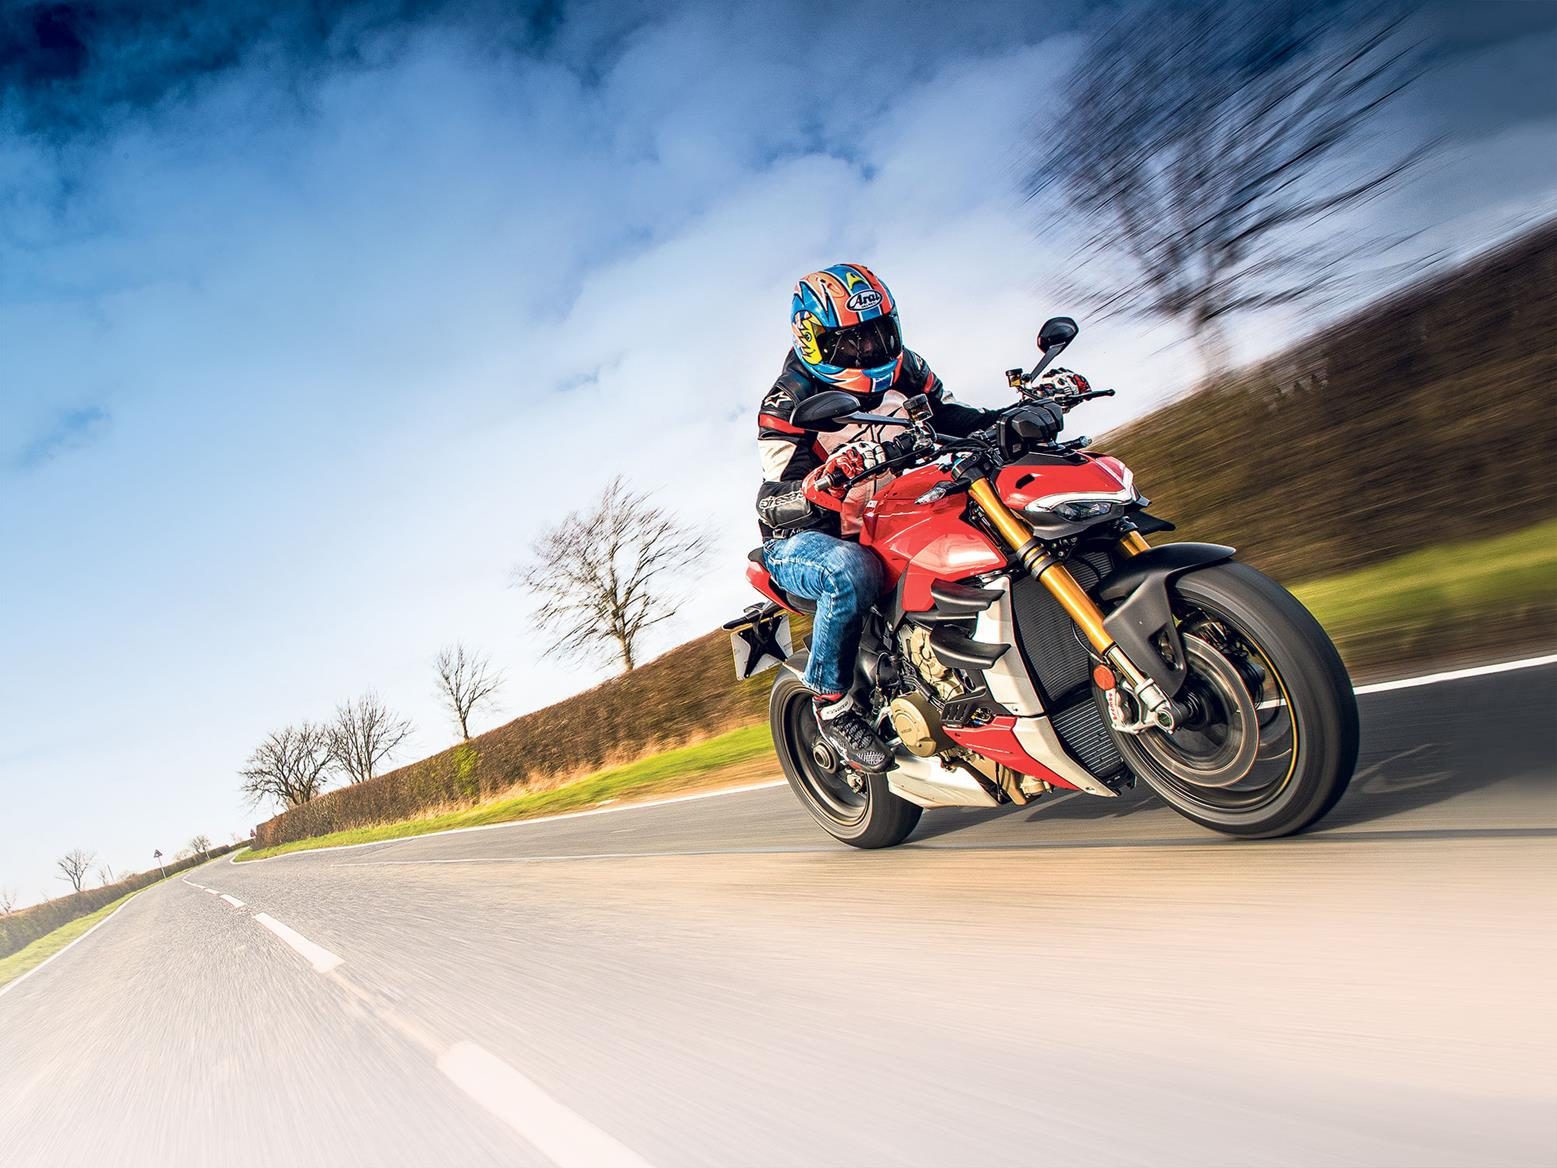 Ducati Streetfighter V4S on the road